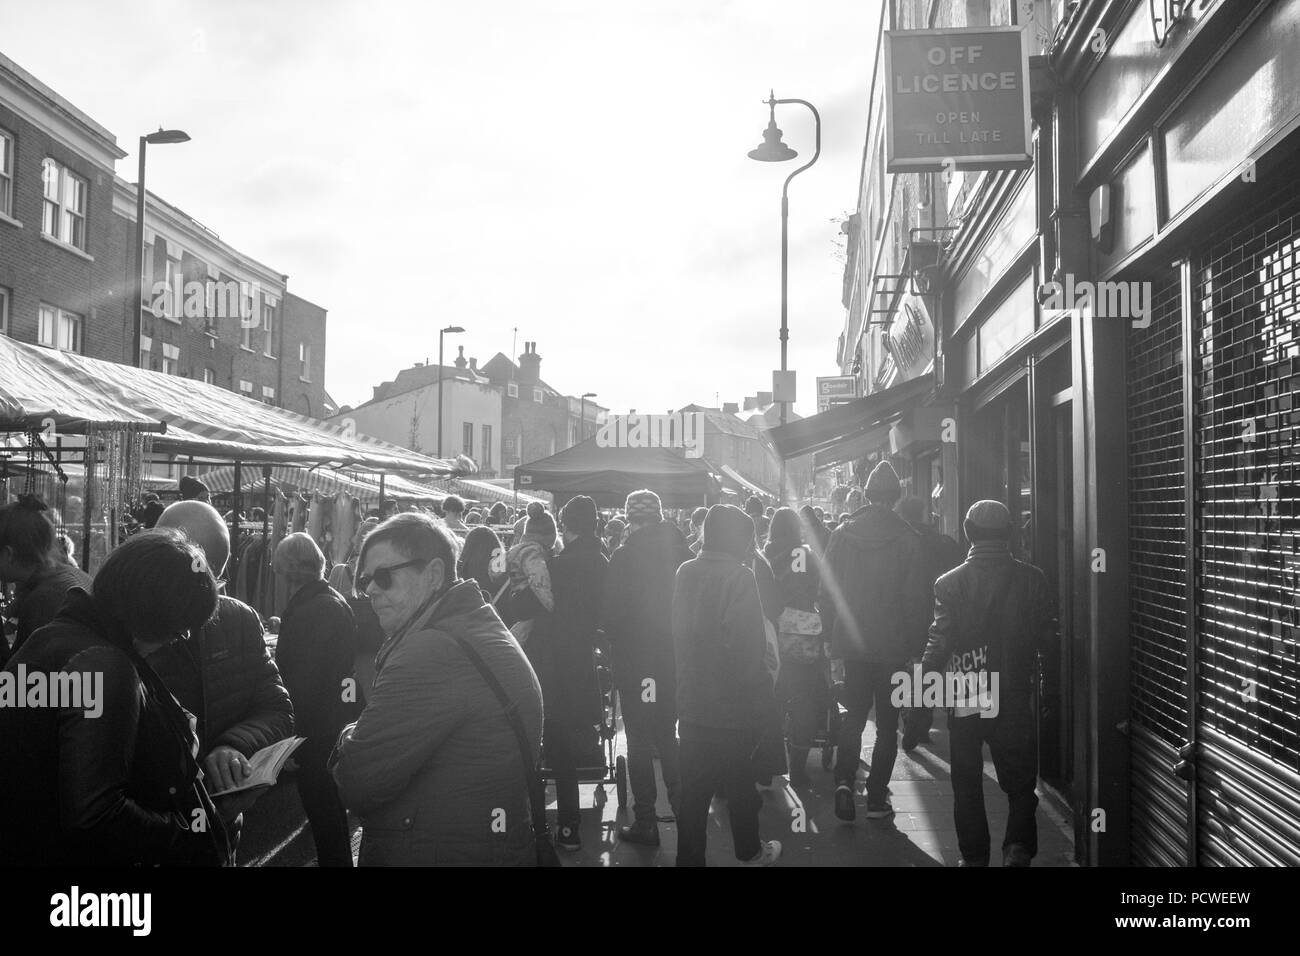 Popular Broadway Saturday market in the centre of Hackney, plenty of amazing food stalls, shops pubs and cafes. Black and white. London, England, UK. - Stock Image